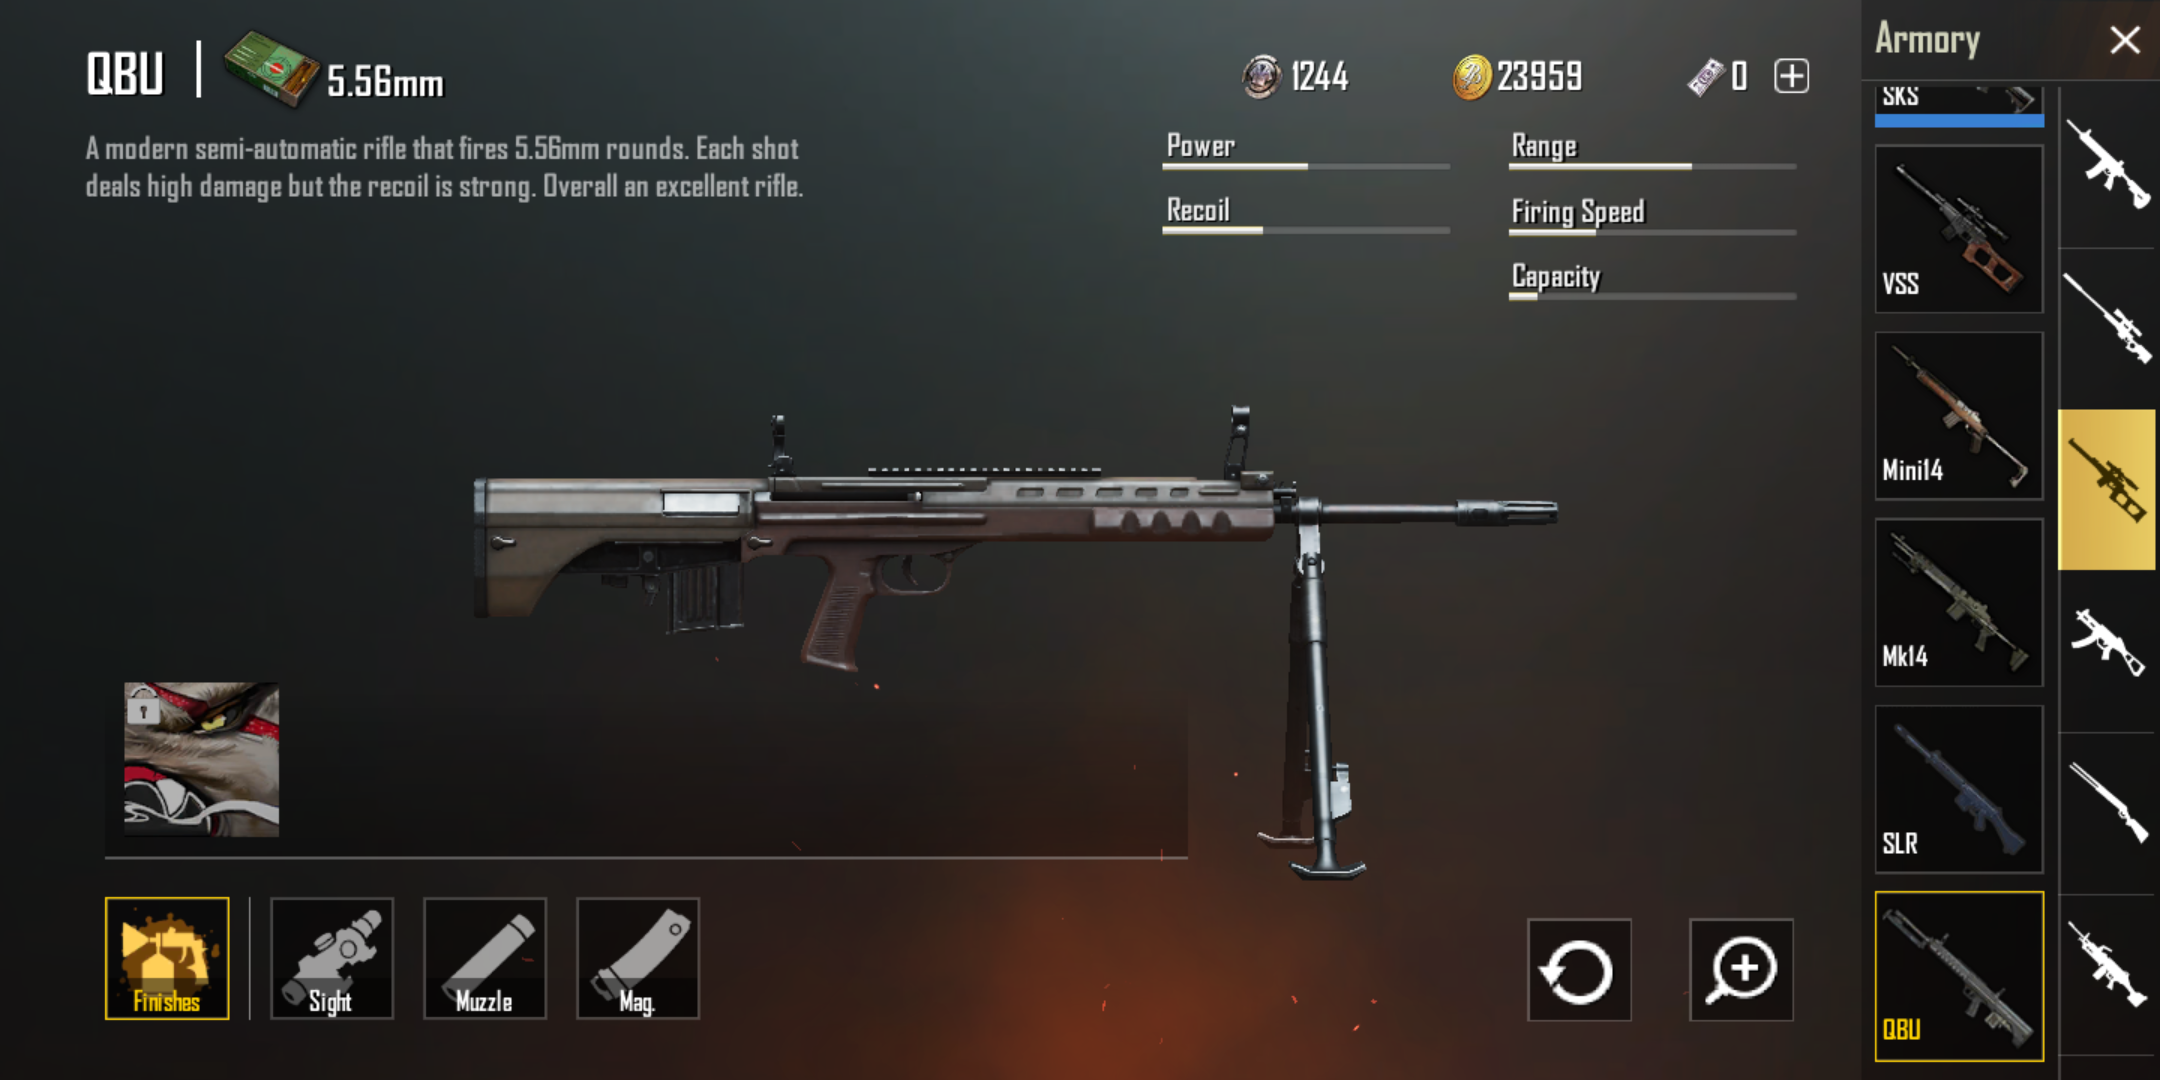 Image Showing QBU a new DMR added to PUBG Mobile